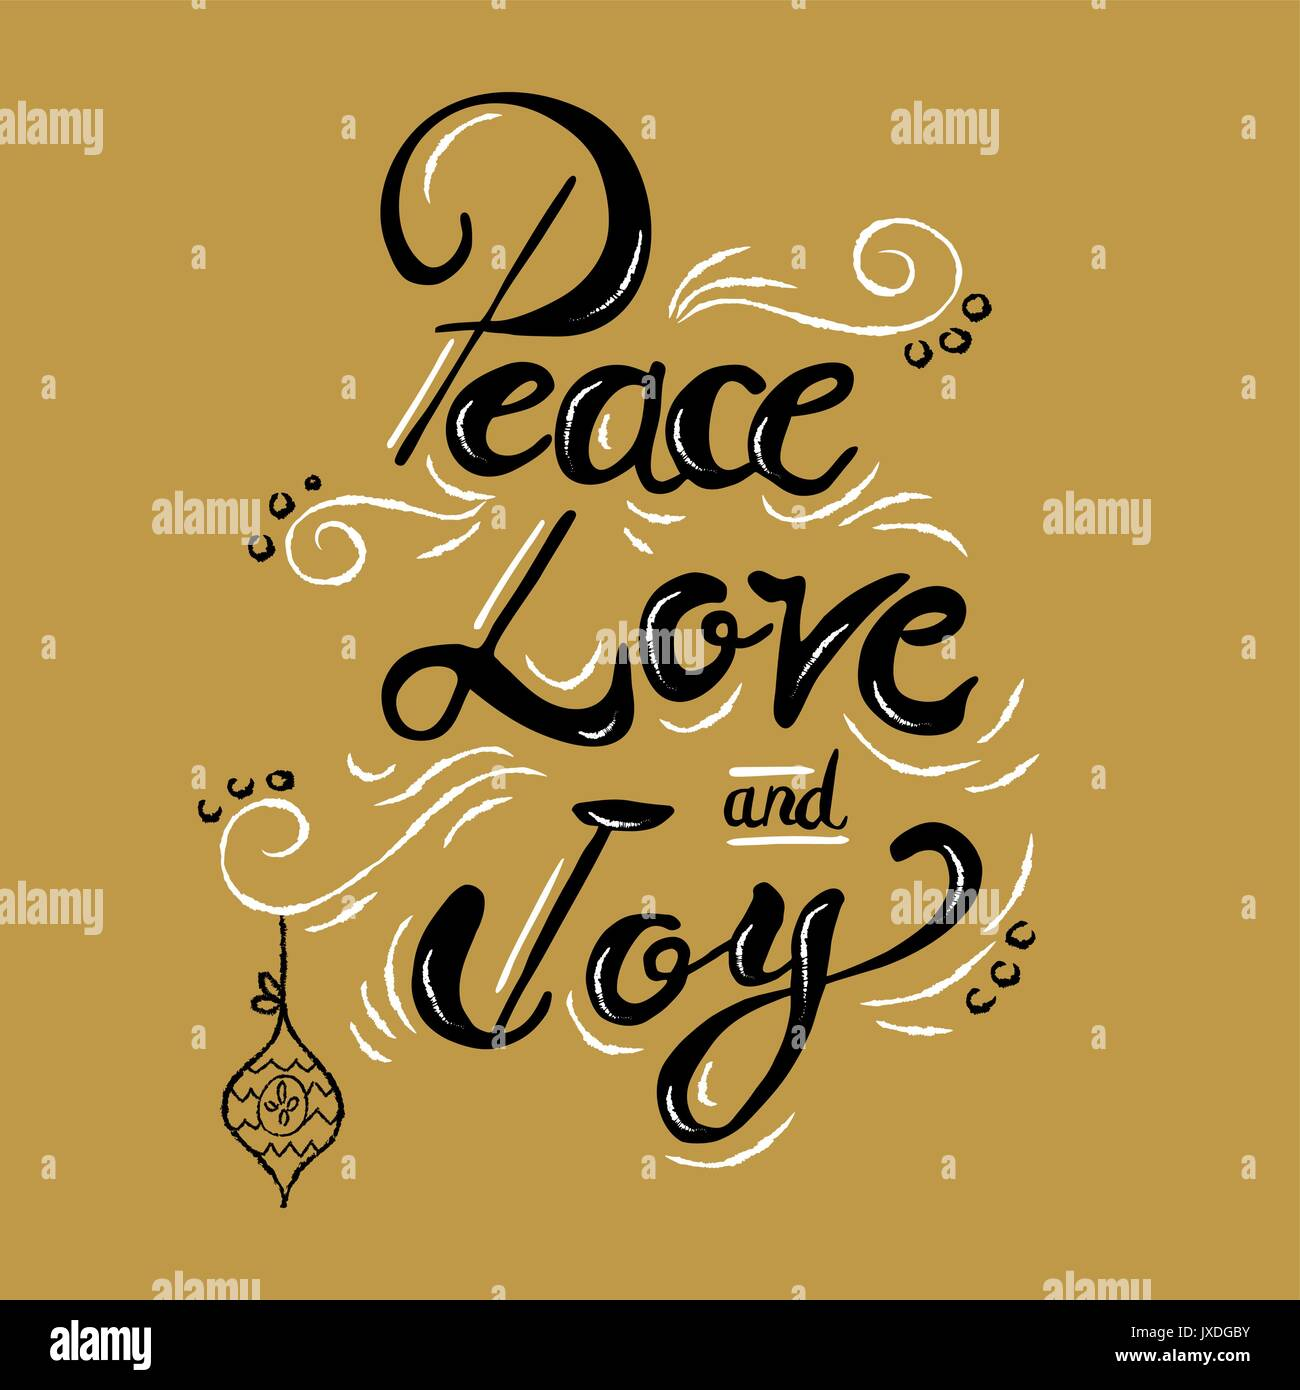 Peace And Joy Quotes: Peace Love And Joy Christmas Calligraphy Quote, Lettering